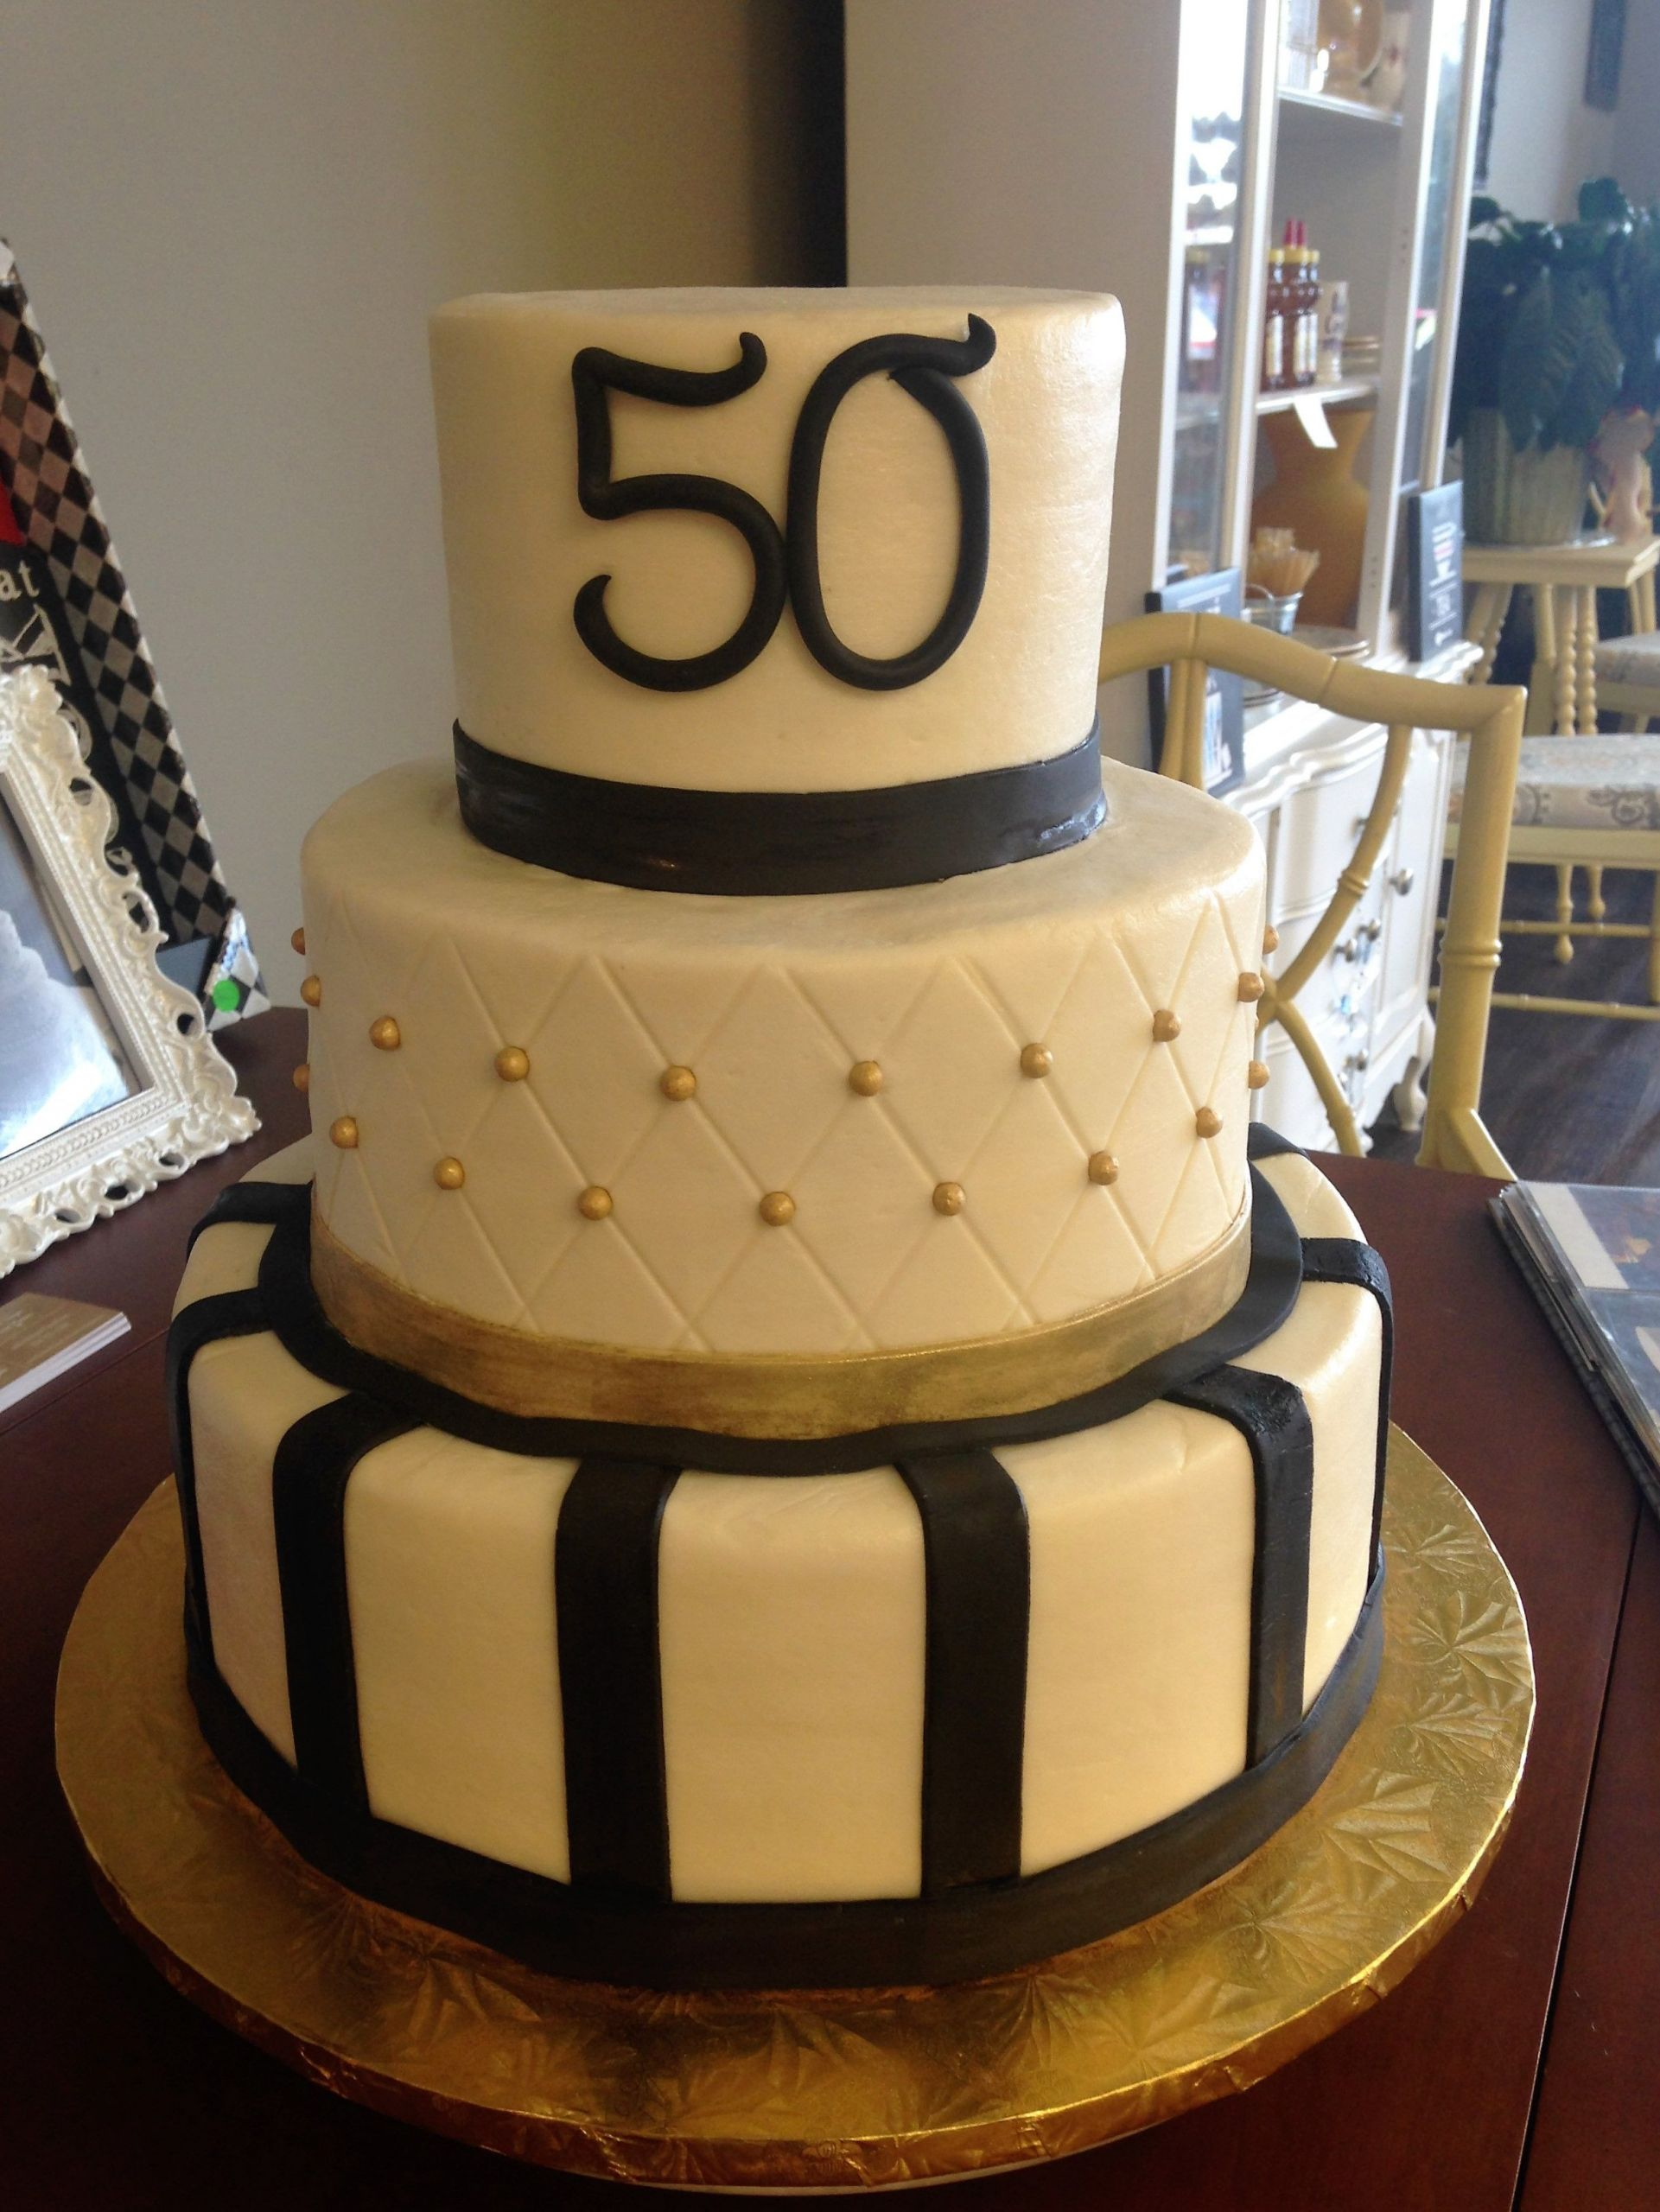 50th Birthday Cake Ideas For Him  Gold and Black 50th Birthday Cake